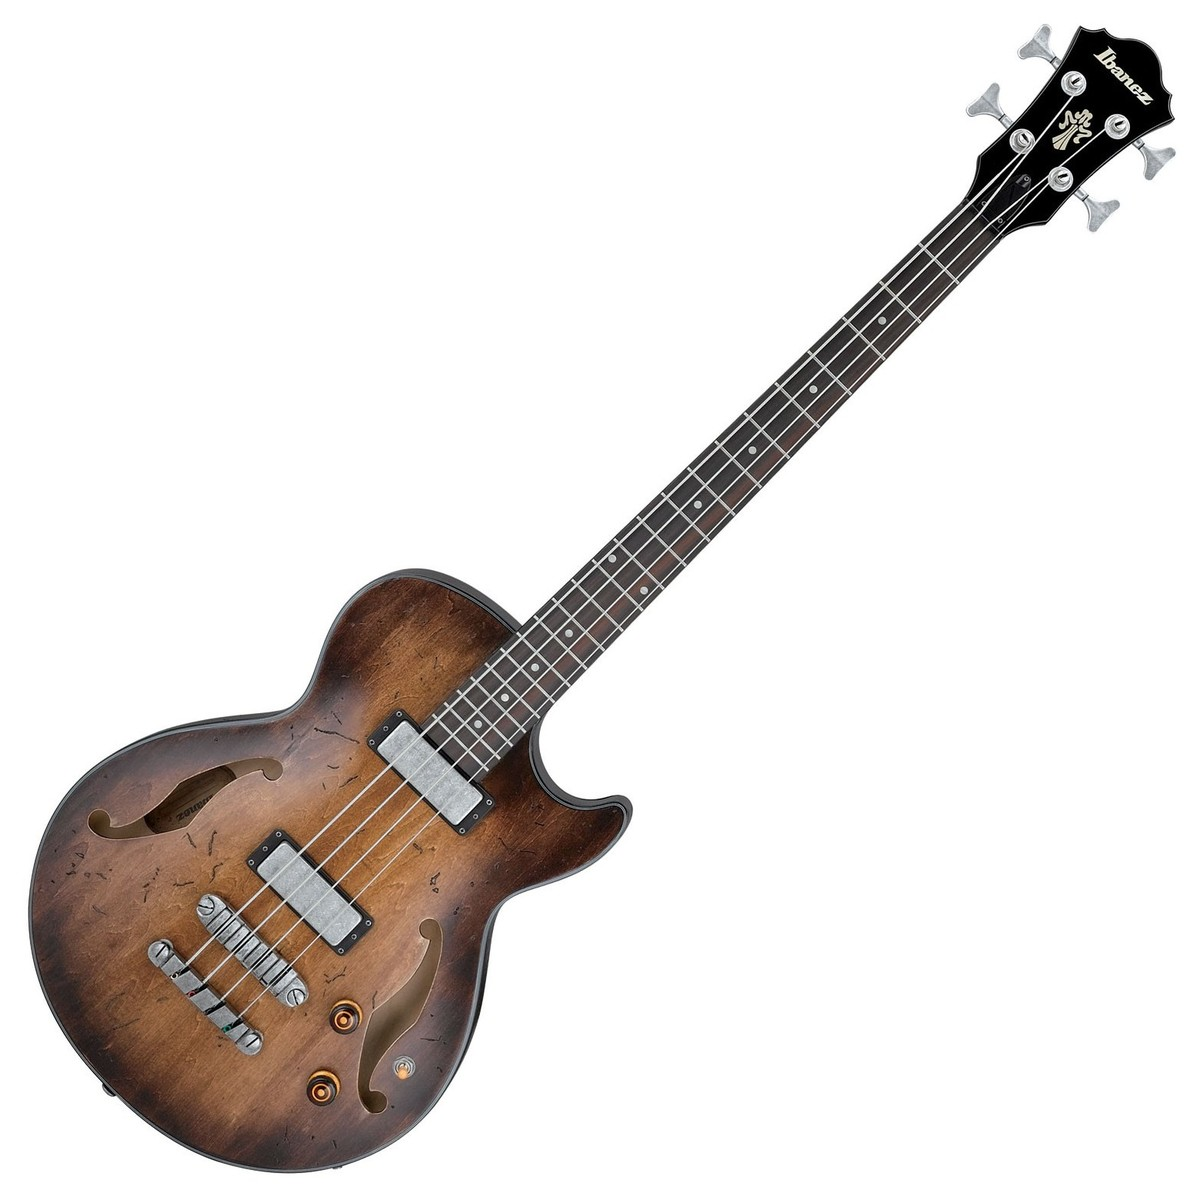 ibanez agbv200a artcore bass 2018 tobacco burst at gear4music. Black Bedroom Furniture Sets. Home Design Ideas